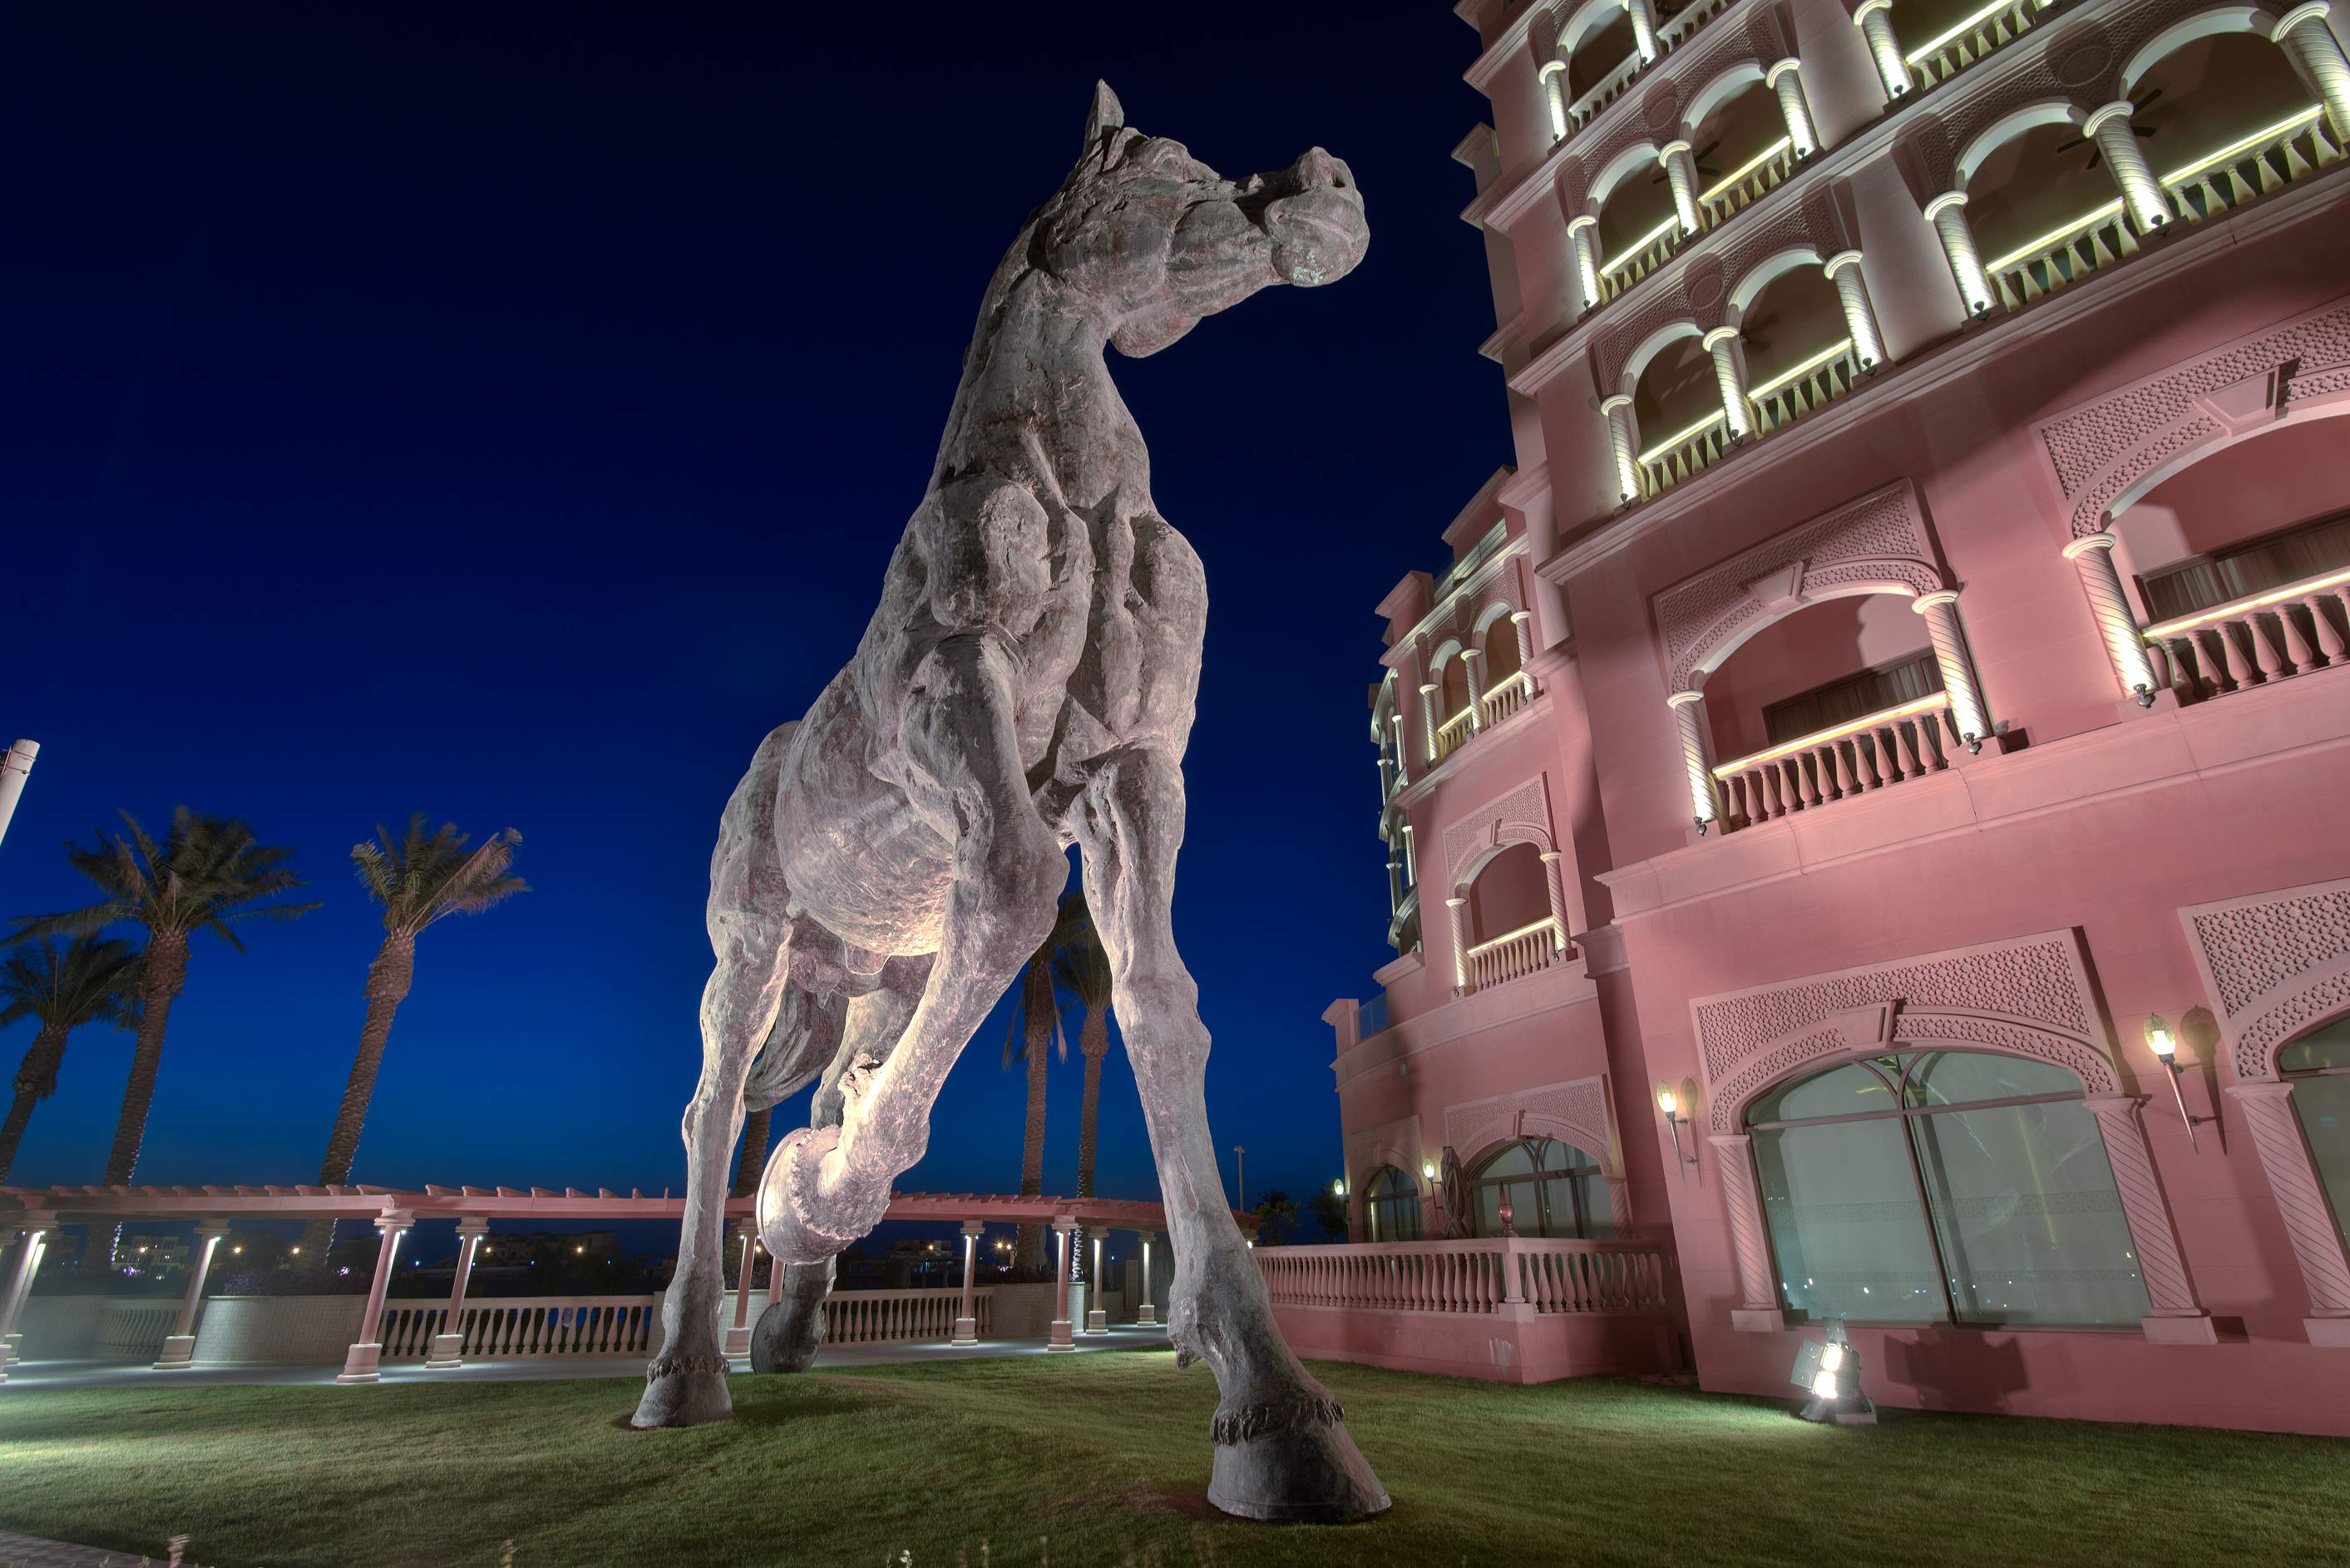 Giant 18 m tall bronze sculpture of a horse by...Pearl Development Project. Doha, Qatar